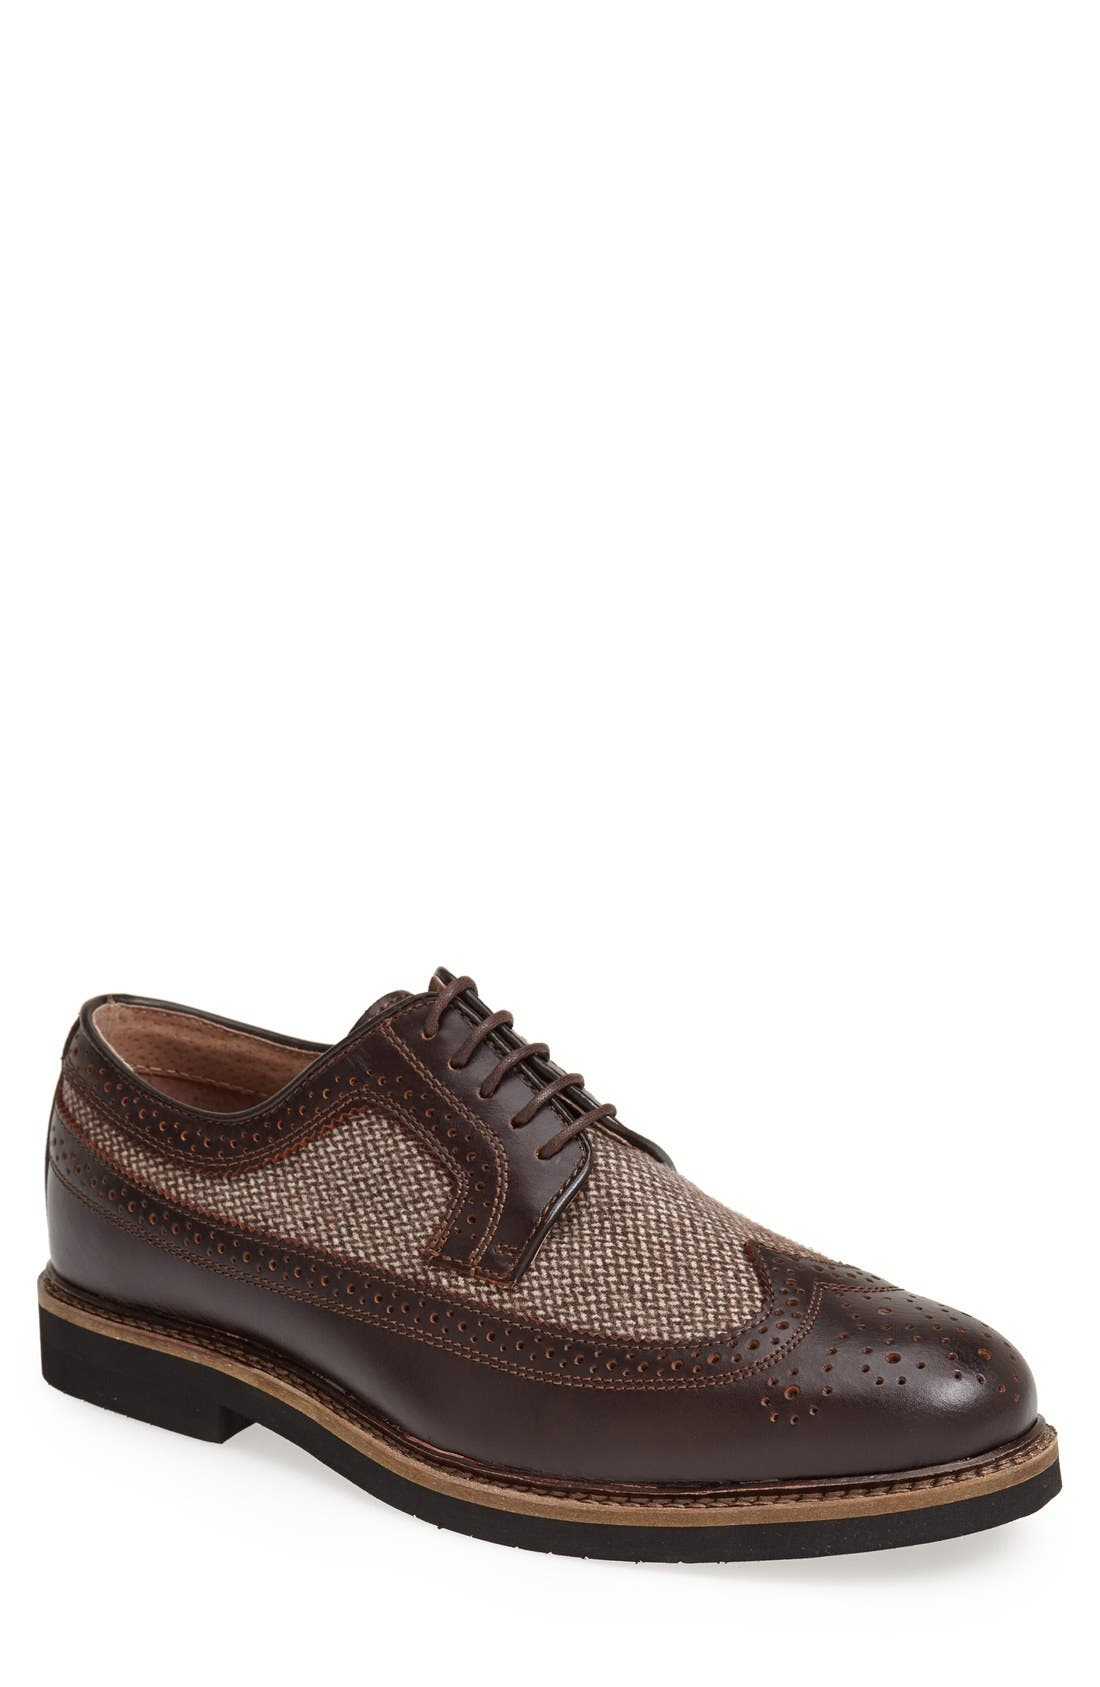 Alternate Image 1 Selected - G.H. Bass & Co. 'Bremmer' Spectator Shoe